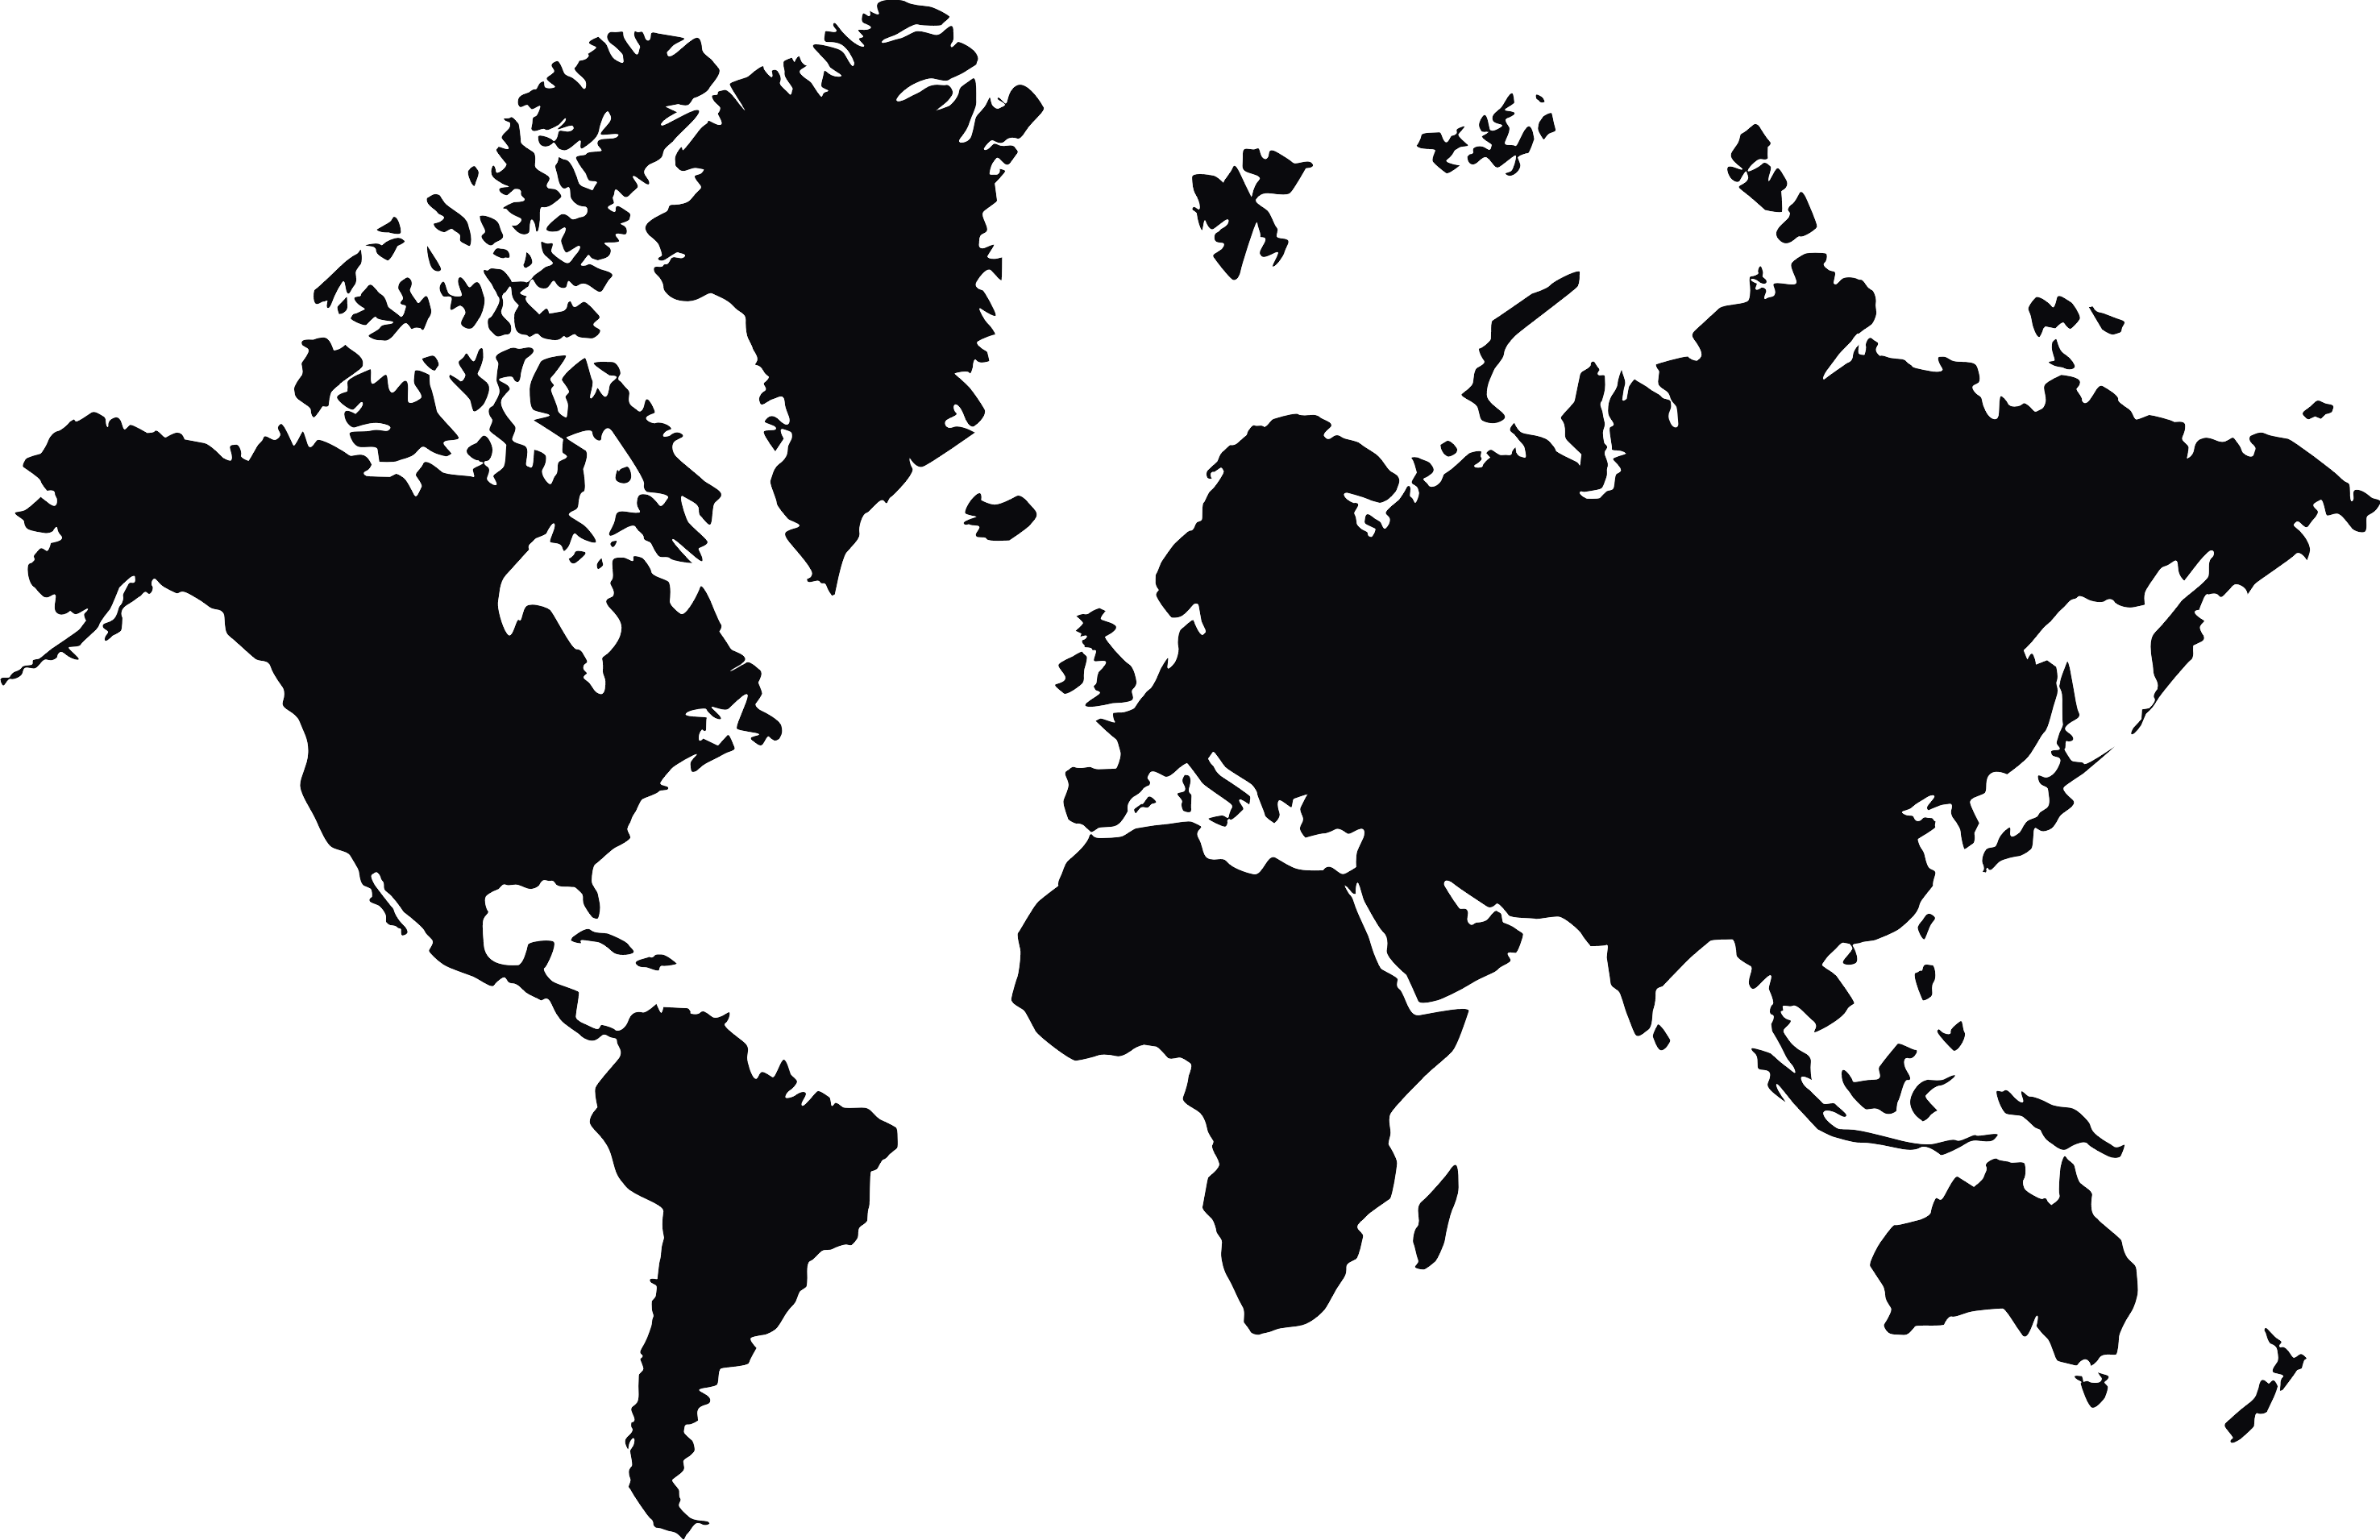 World map black and white png.